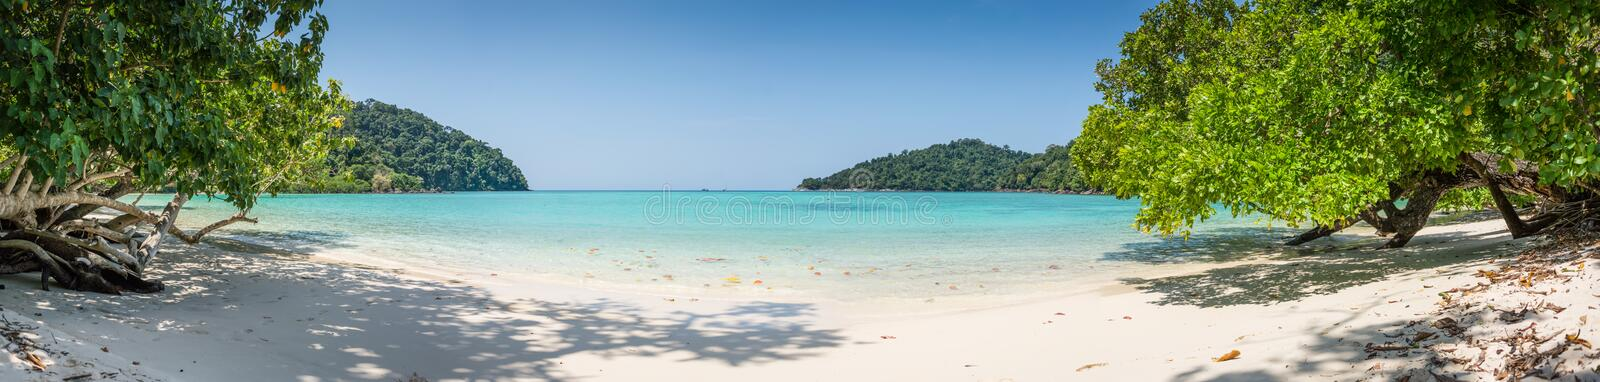 Huge Panorama Wild Tropical Beach. Turuoise Sea at Surin Island Marine Park. Thailand. royalty free stock image